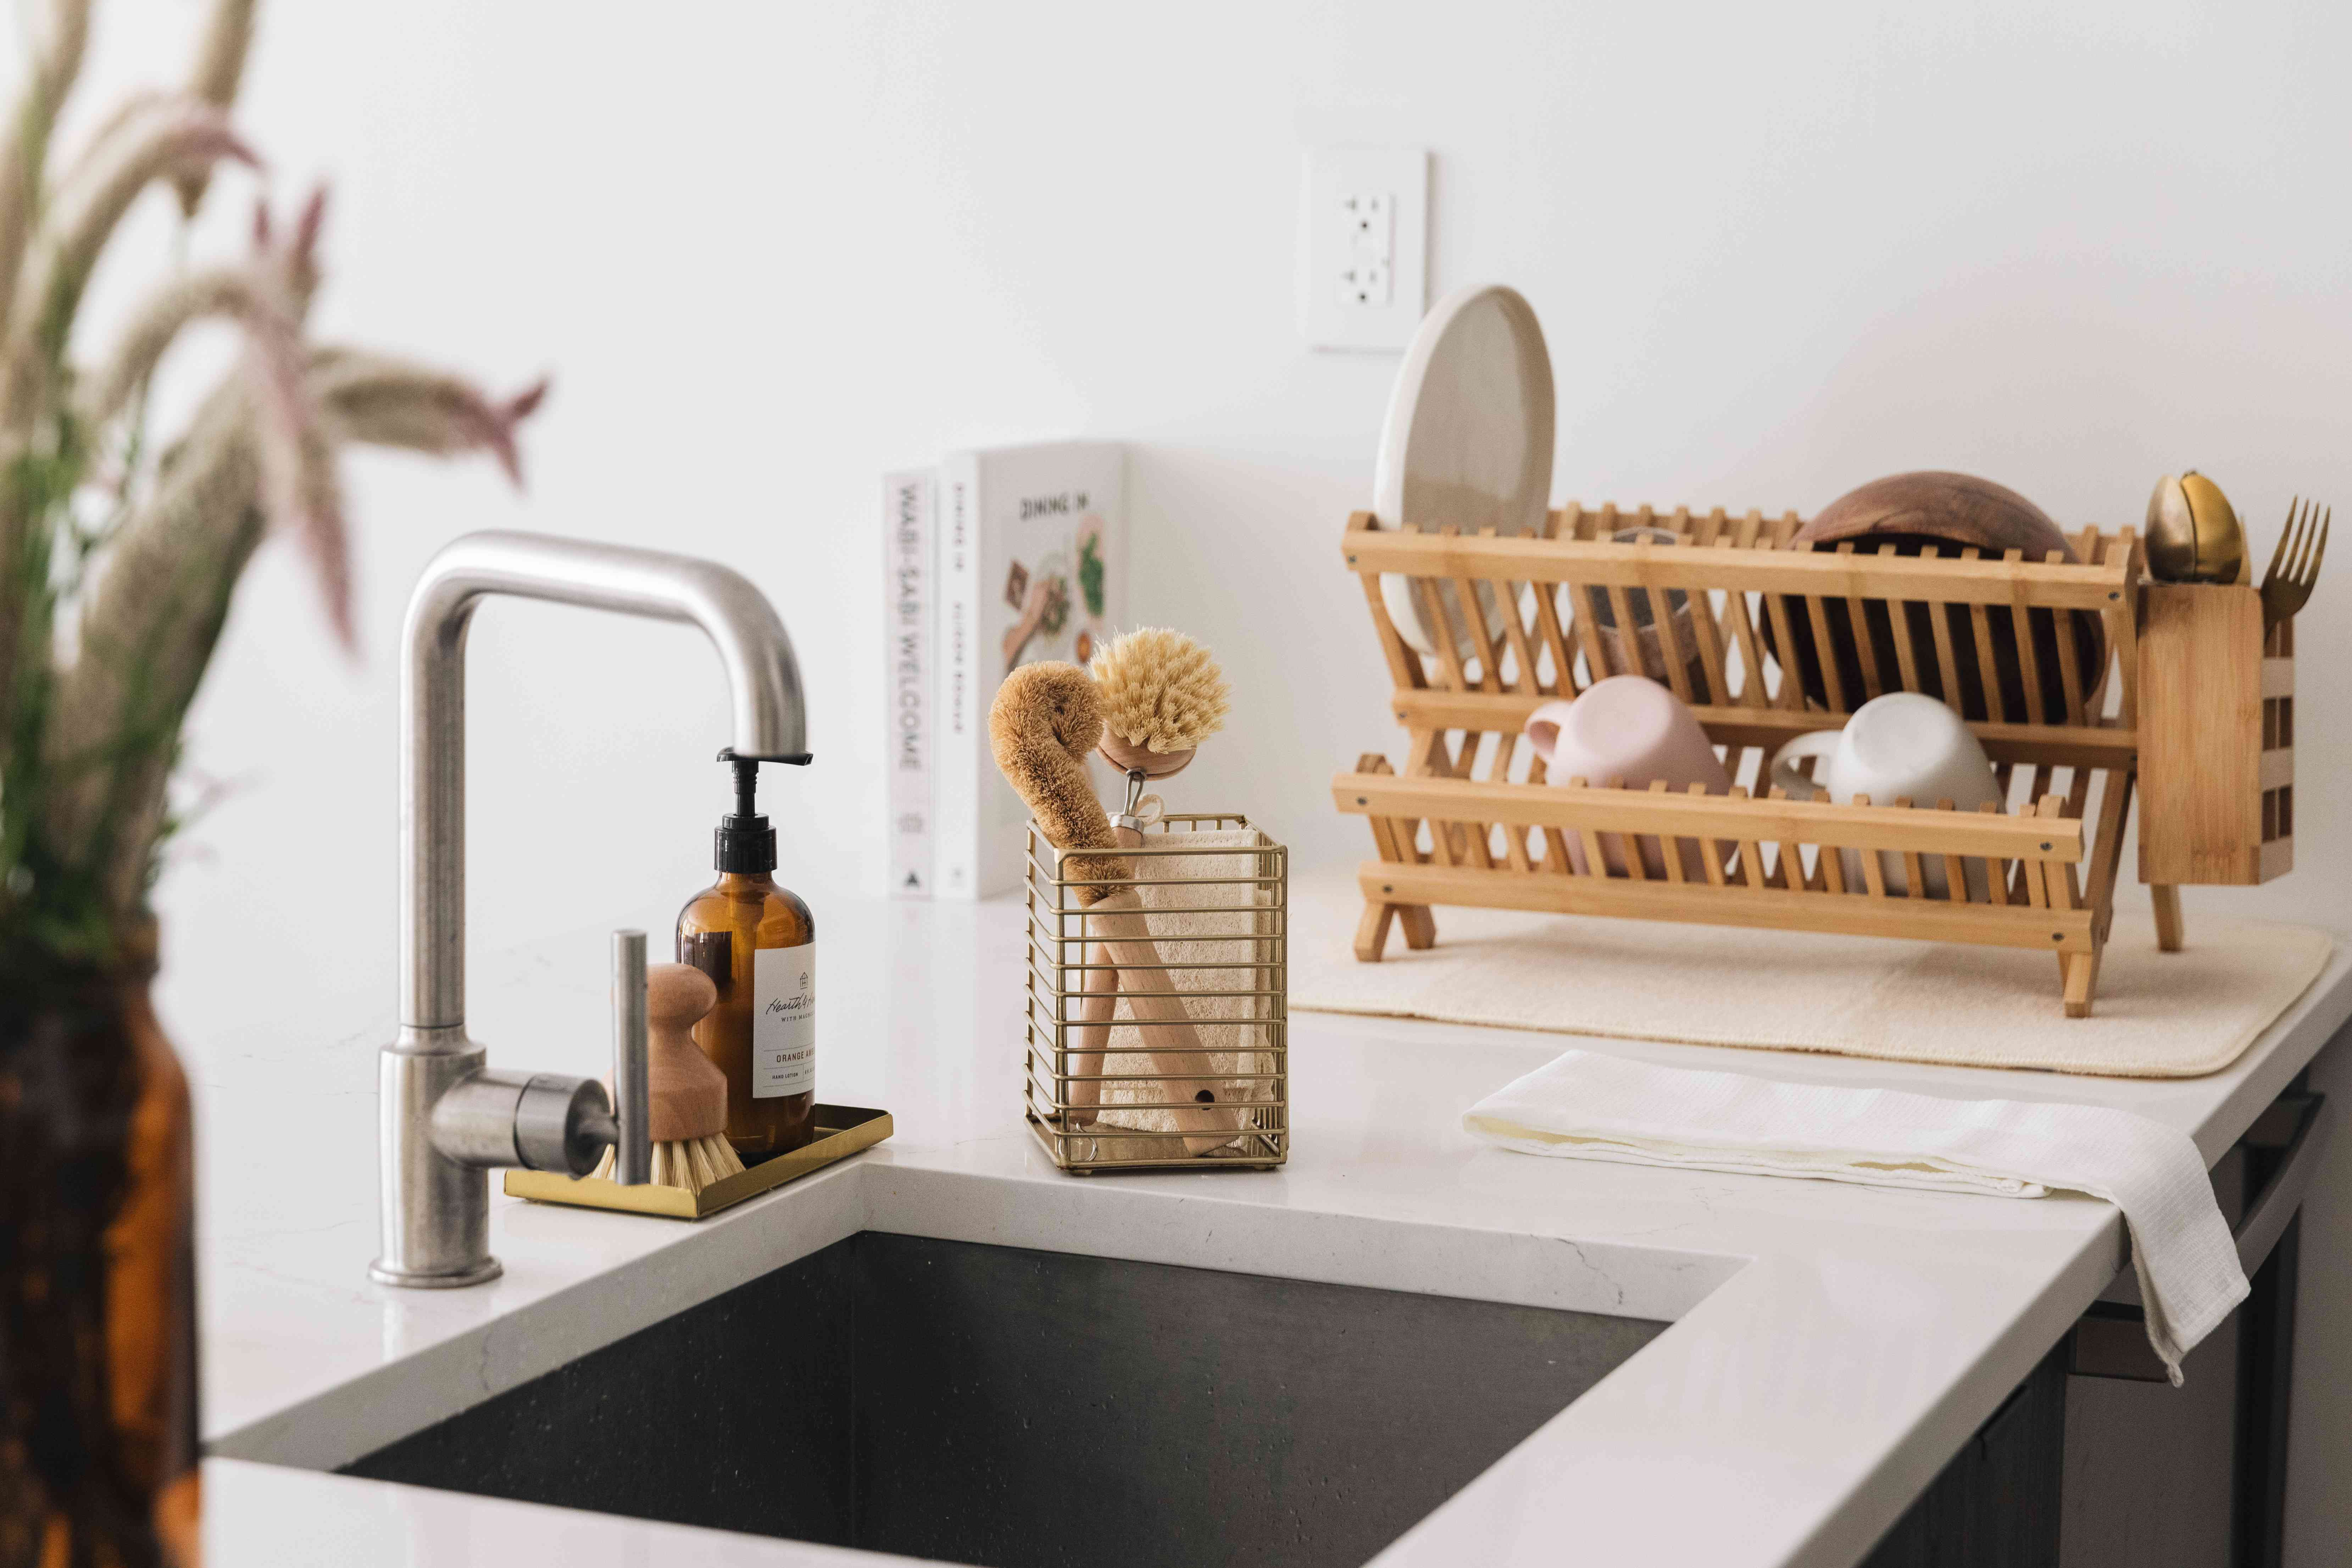 dish drying rack and sink items